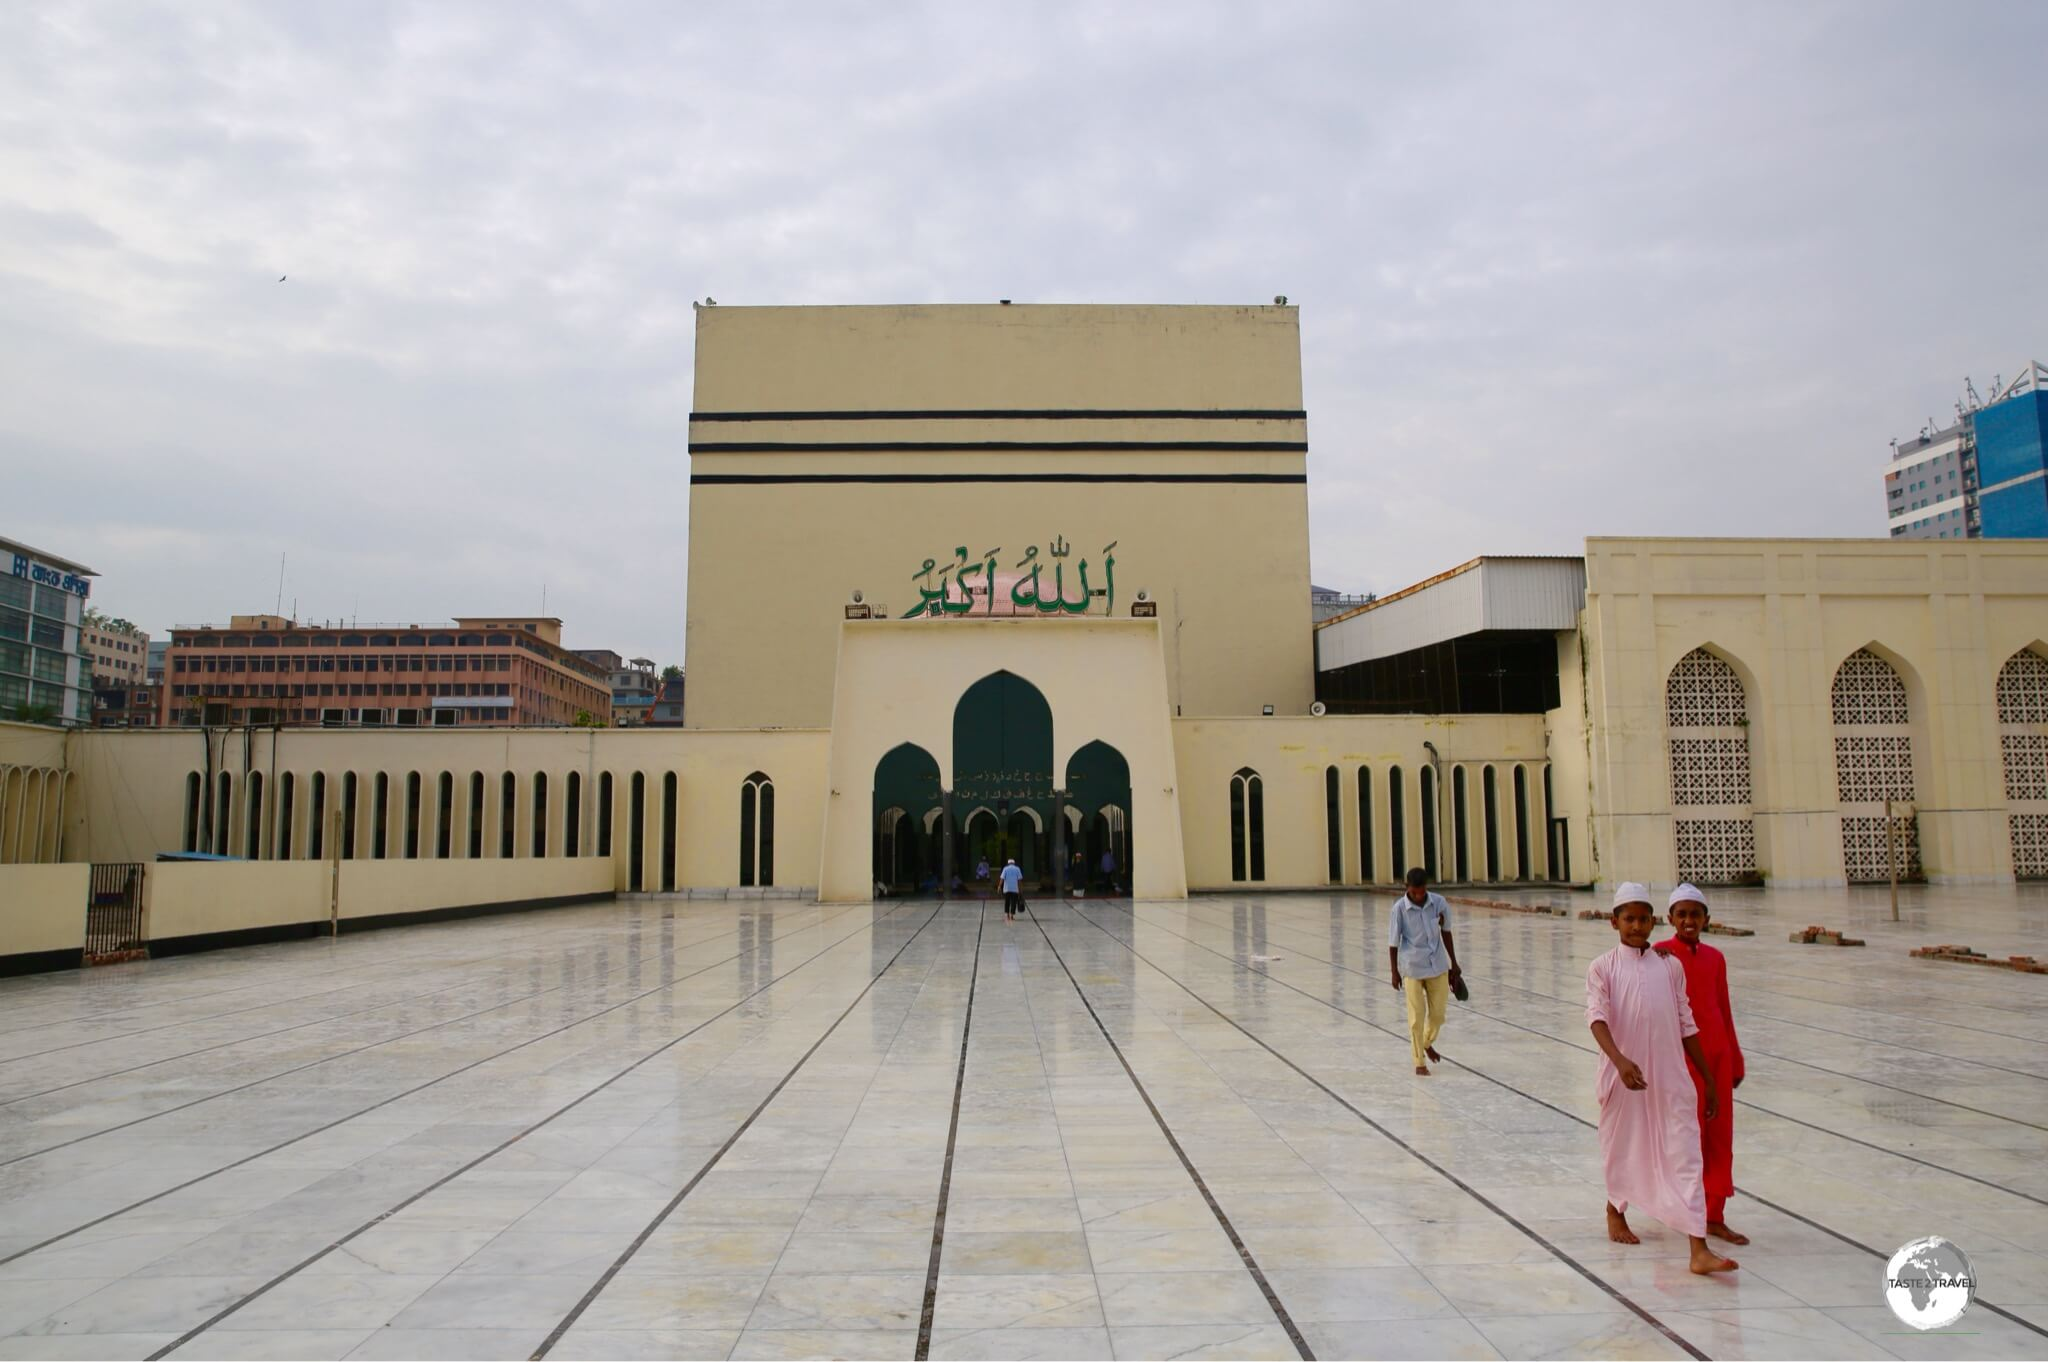 Baitul Mukarram's large cube shape was modelled after the Ka'abah at Mecca.